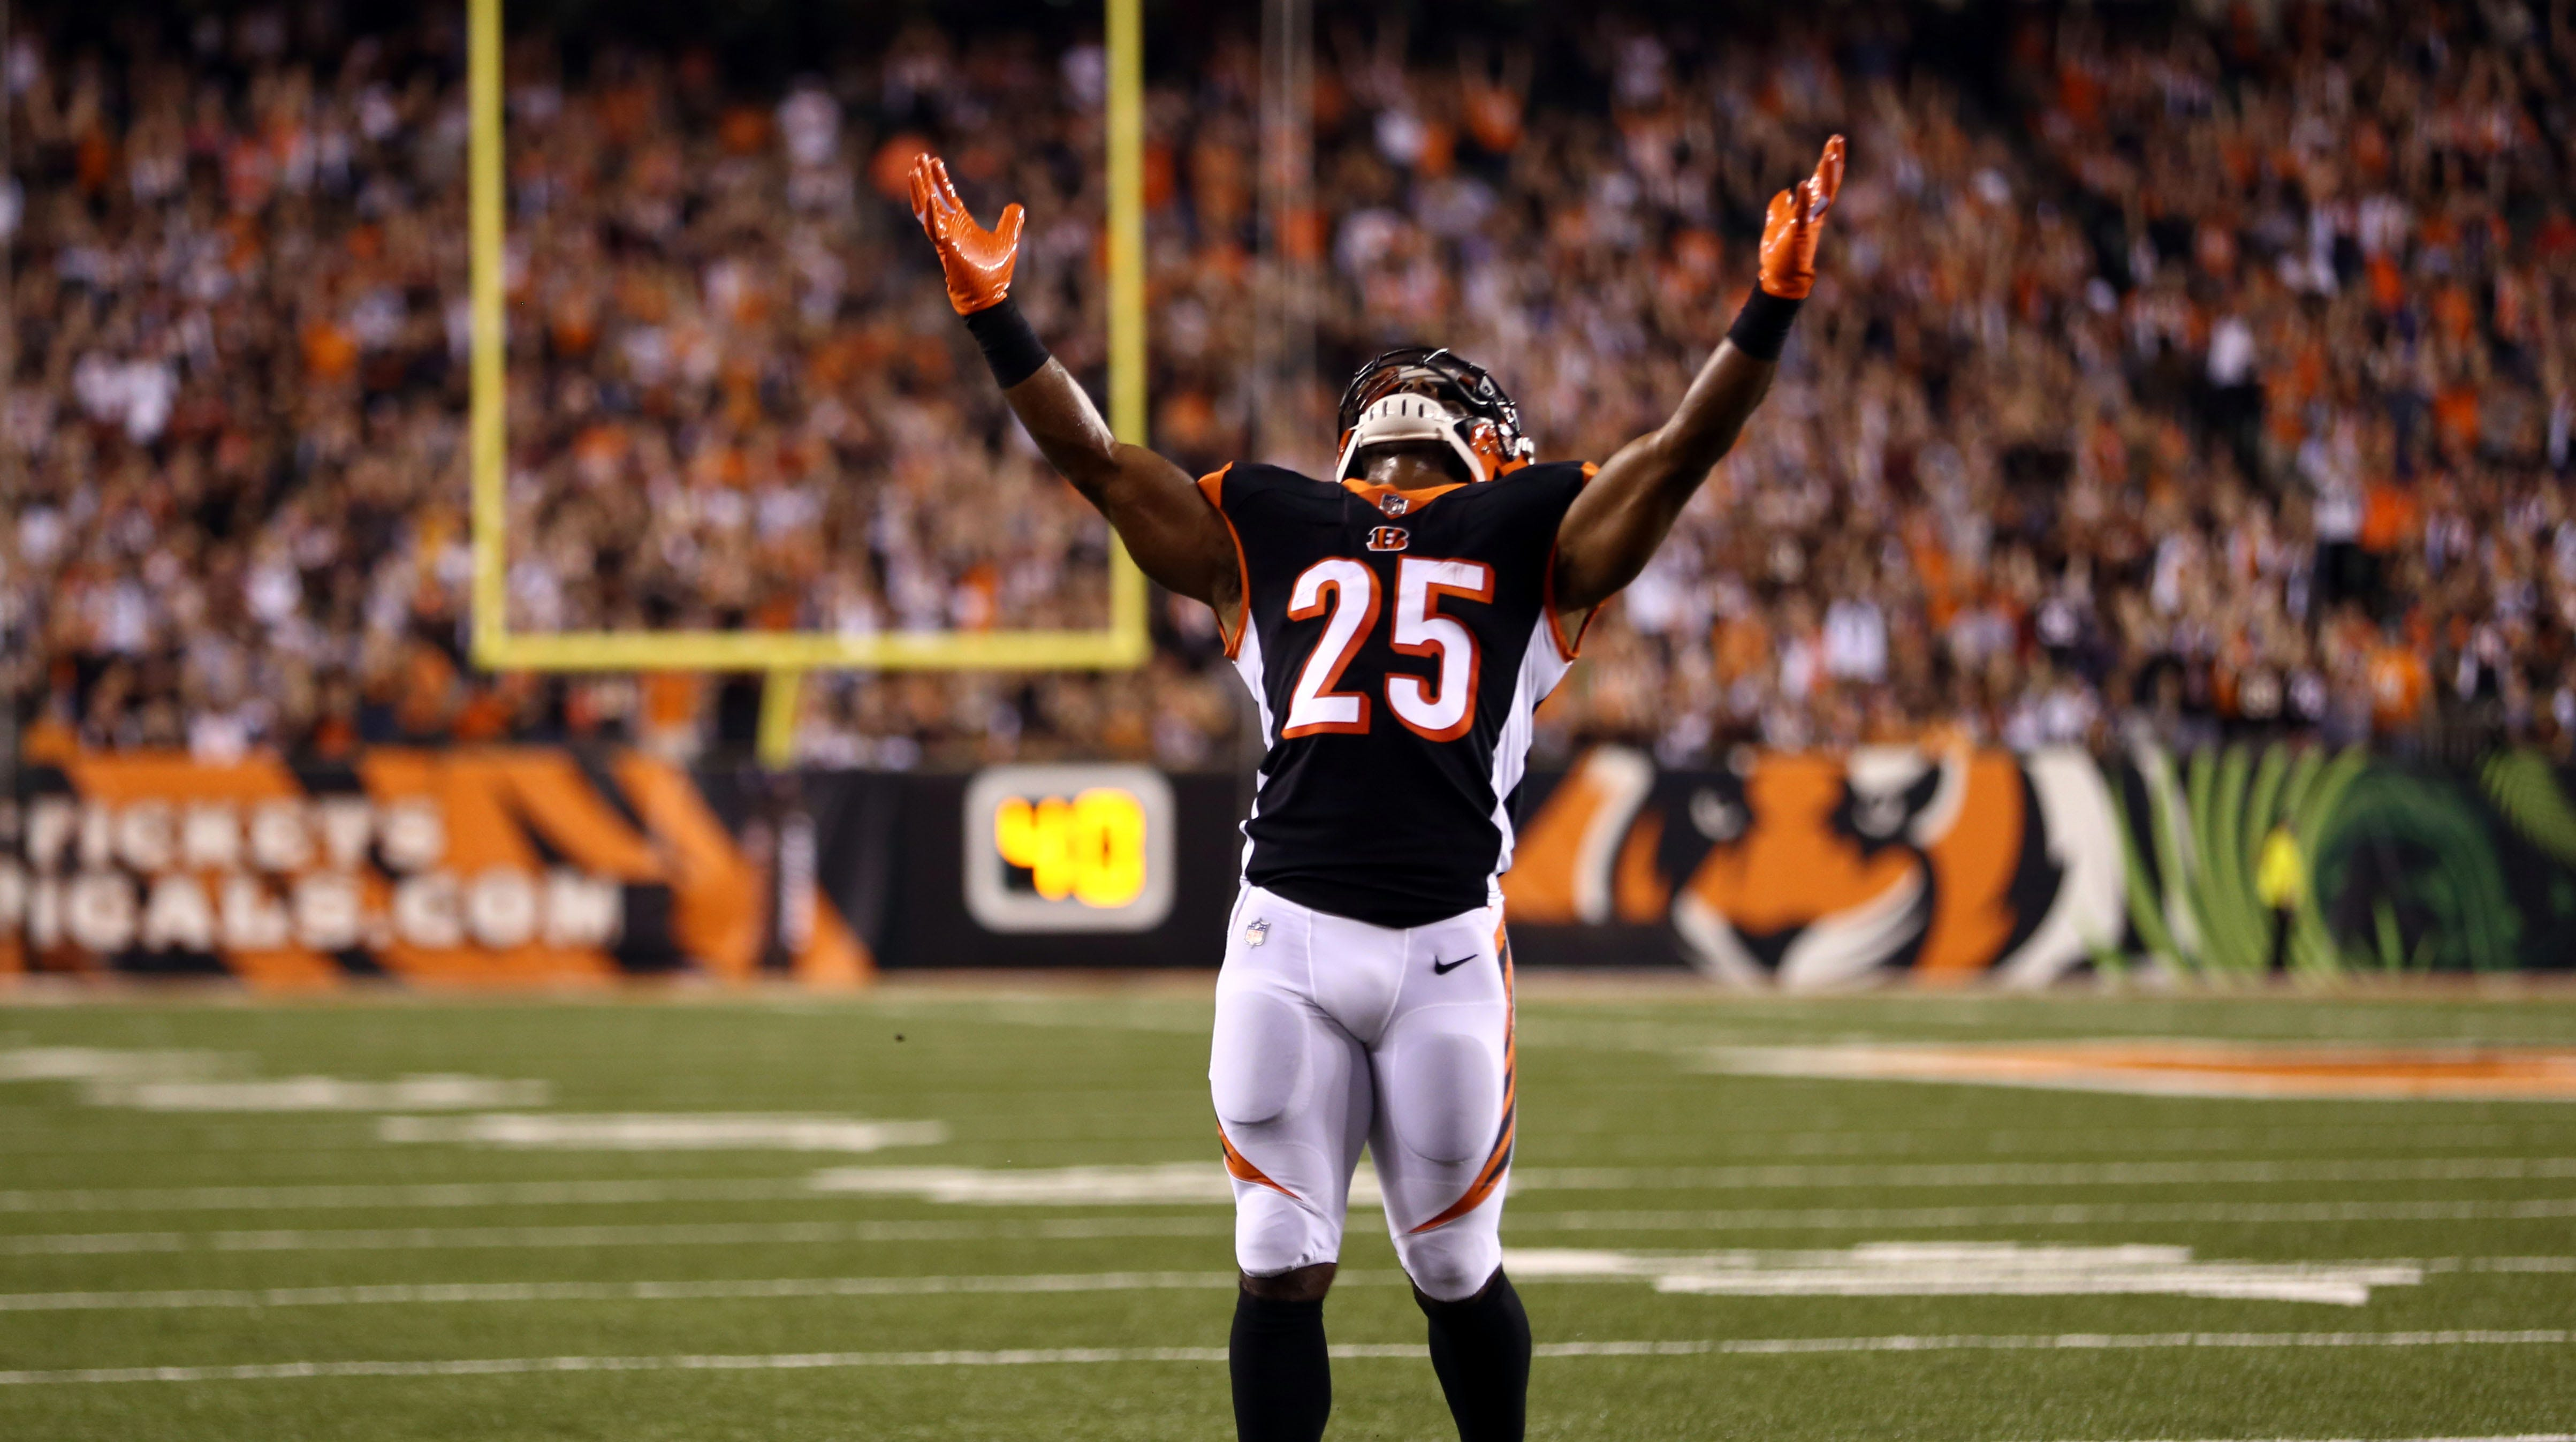 Fantasy football waiver wire: Gio Bernard, Corey Clement provide short-term RB help